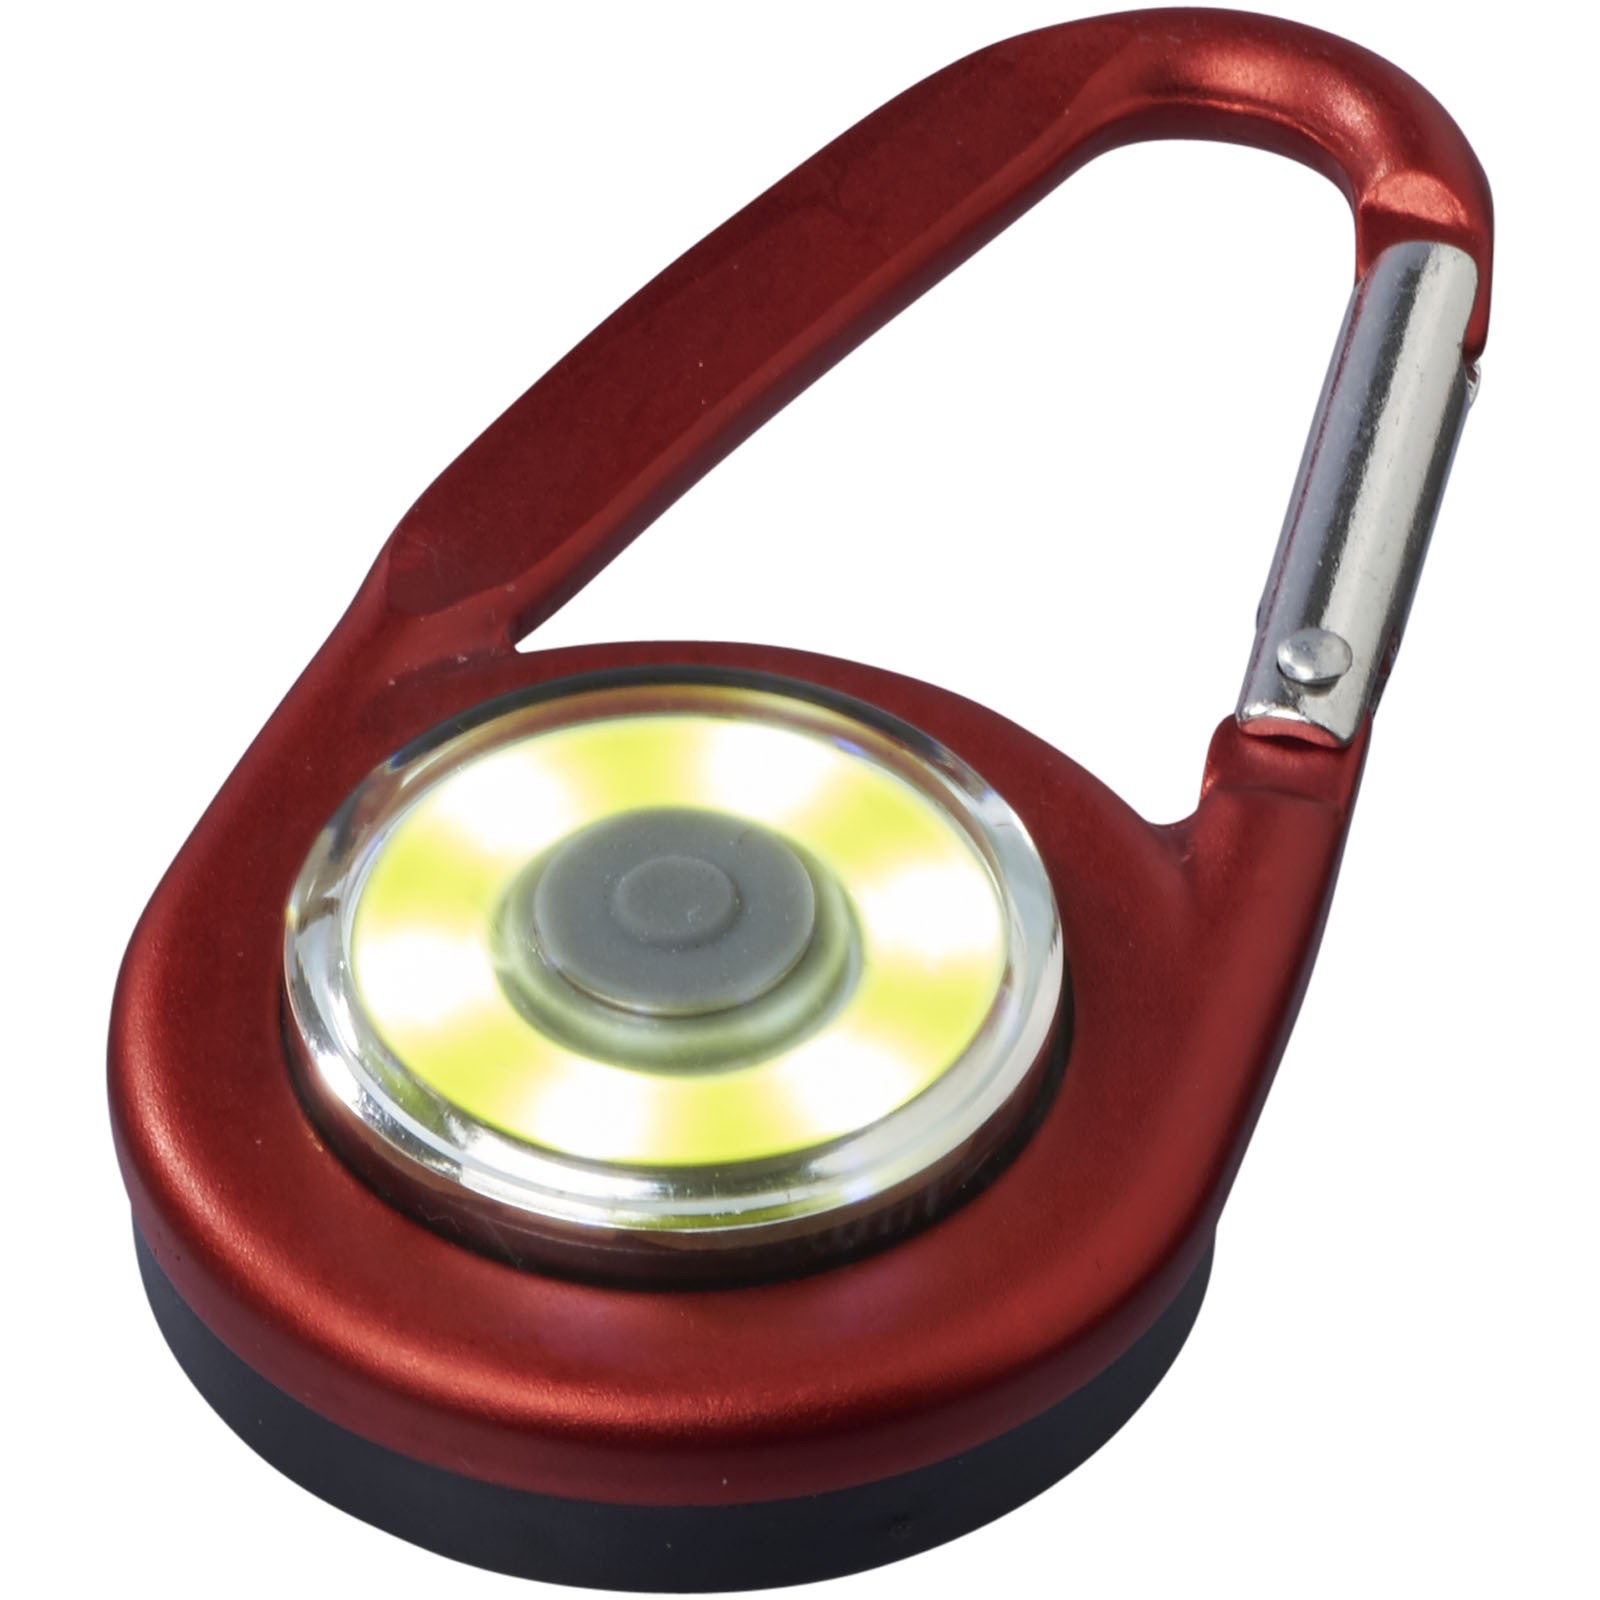 Eye COB light with carabiner - Red